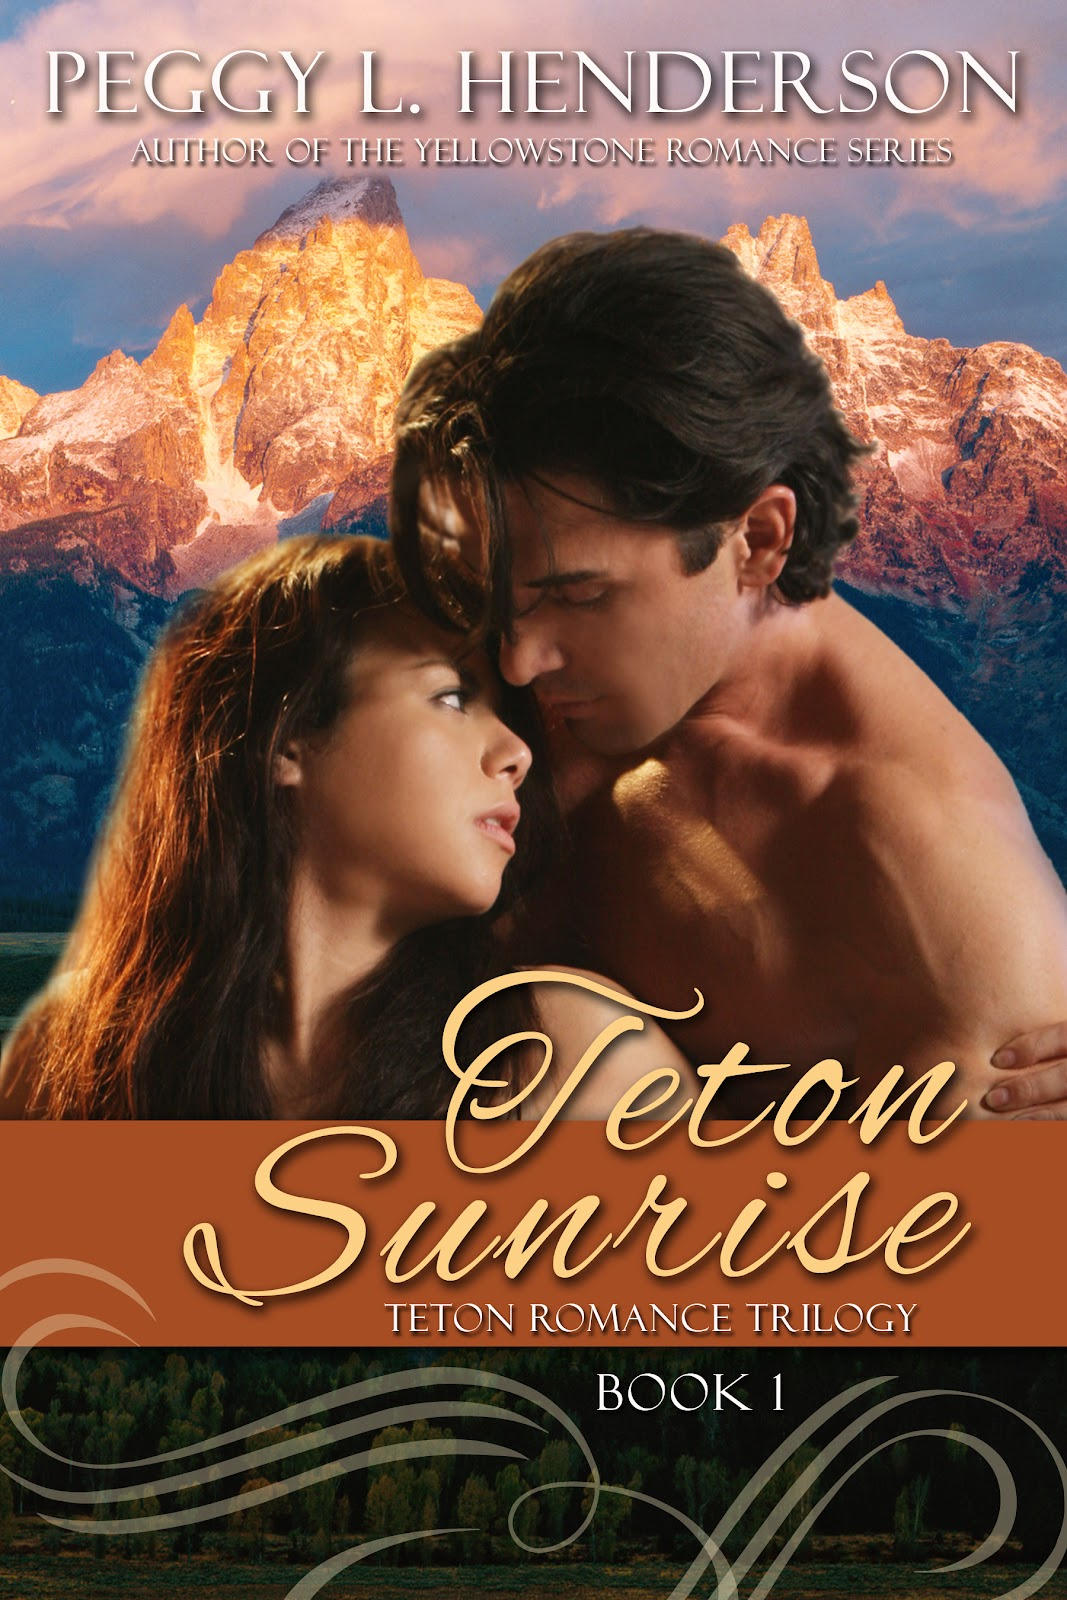 Romance Book Cover ~ Romance book covers cover reveal for teton sunrise by